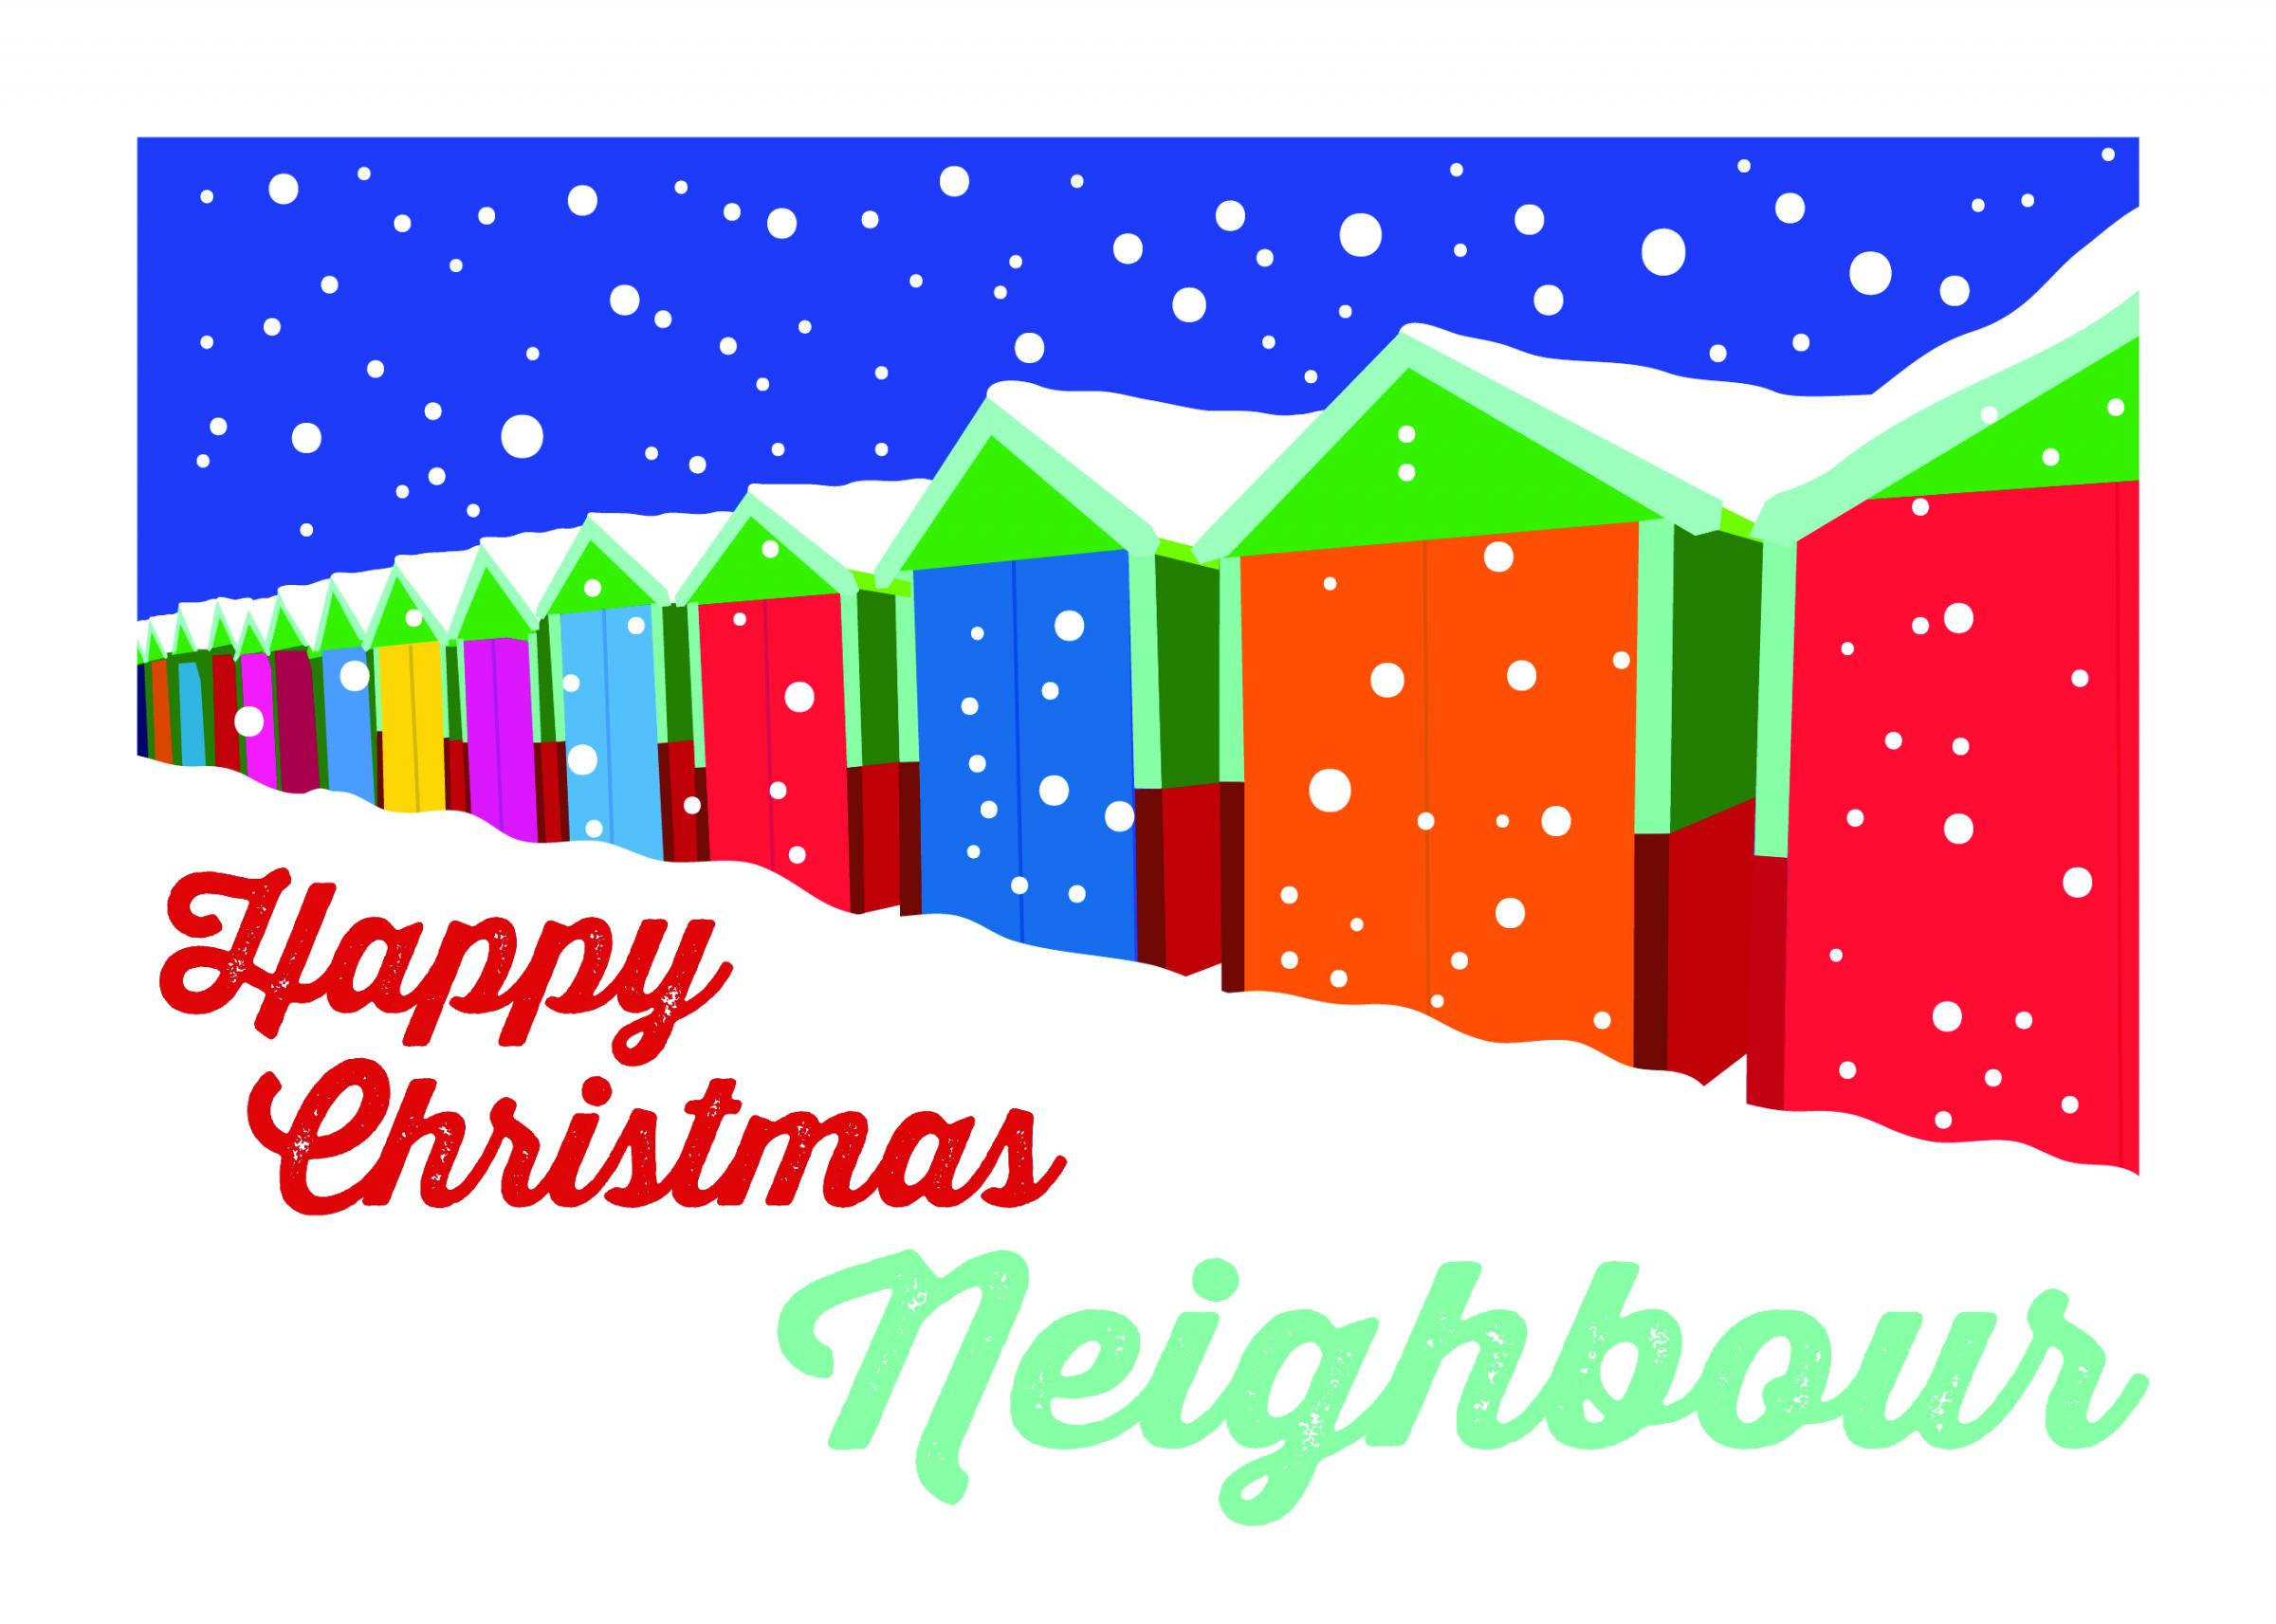 One of the Christmas cards produced for the Know My Neighbour campaign